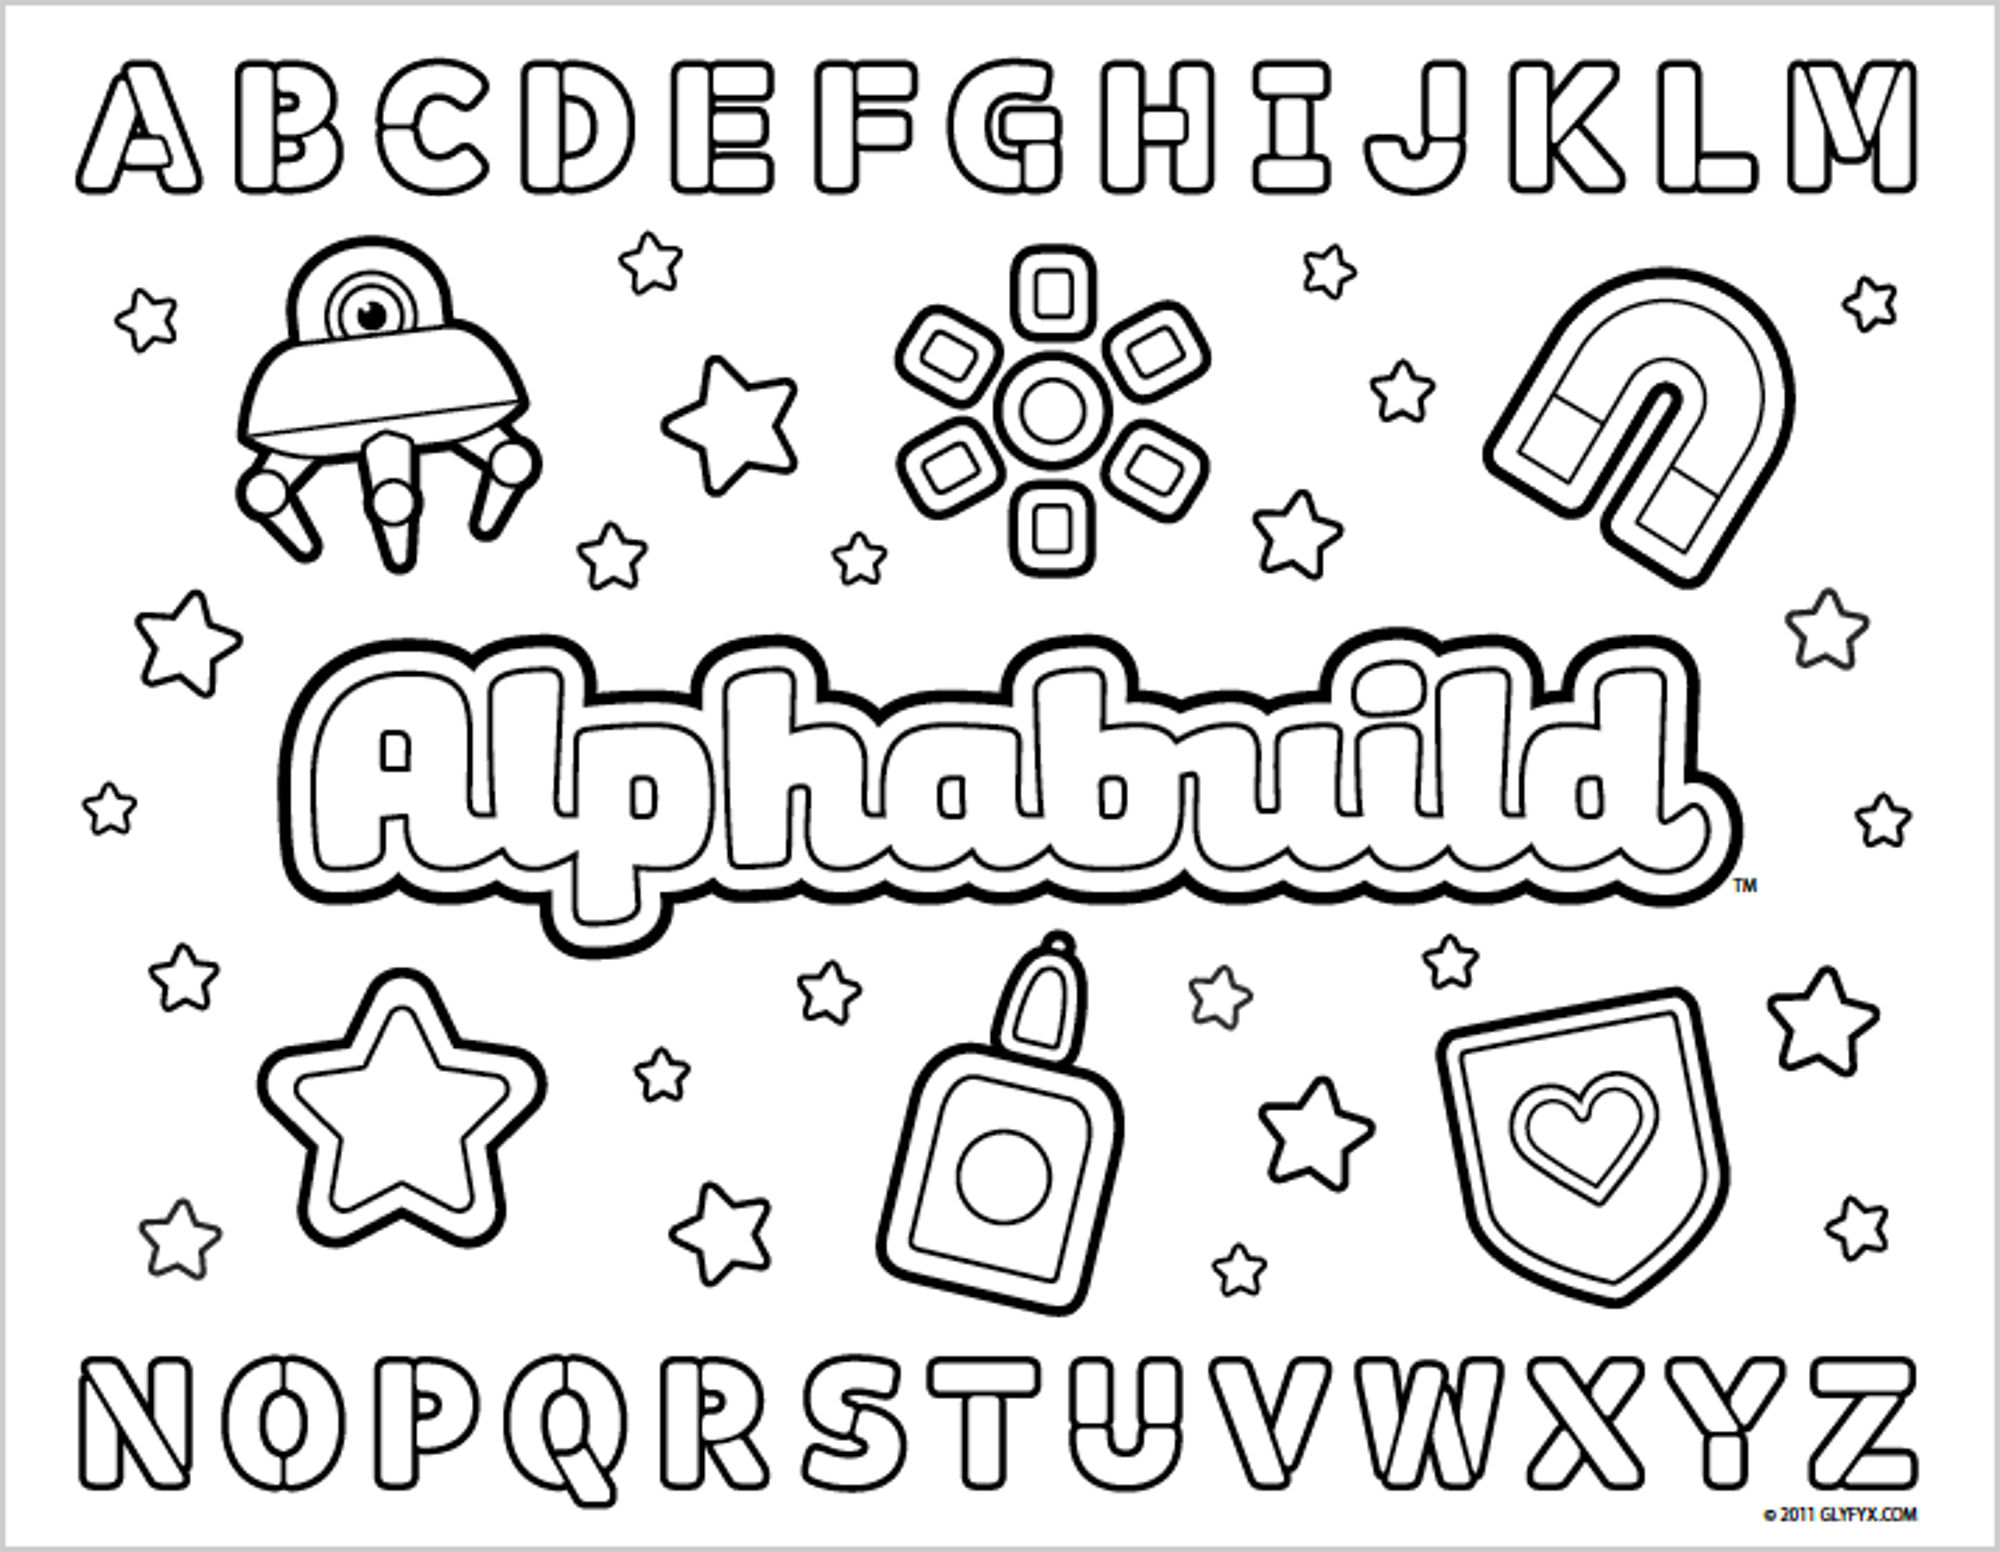 abc-coloring-pages-for-preschoolers | | BestAppsForKids.com